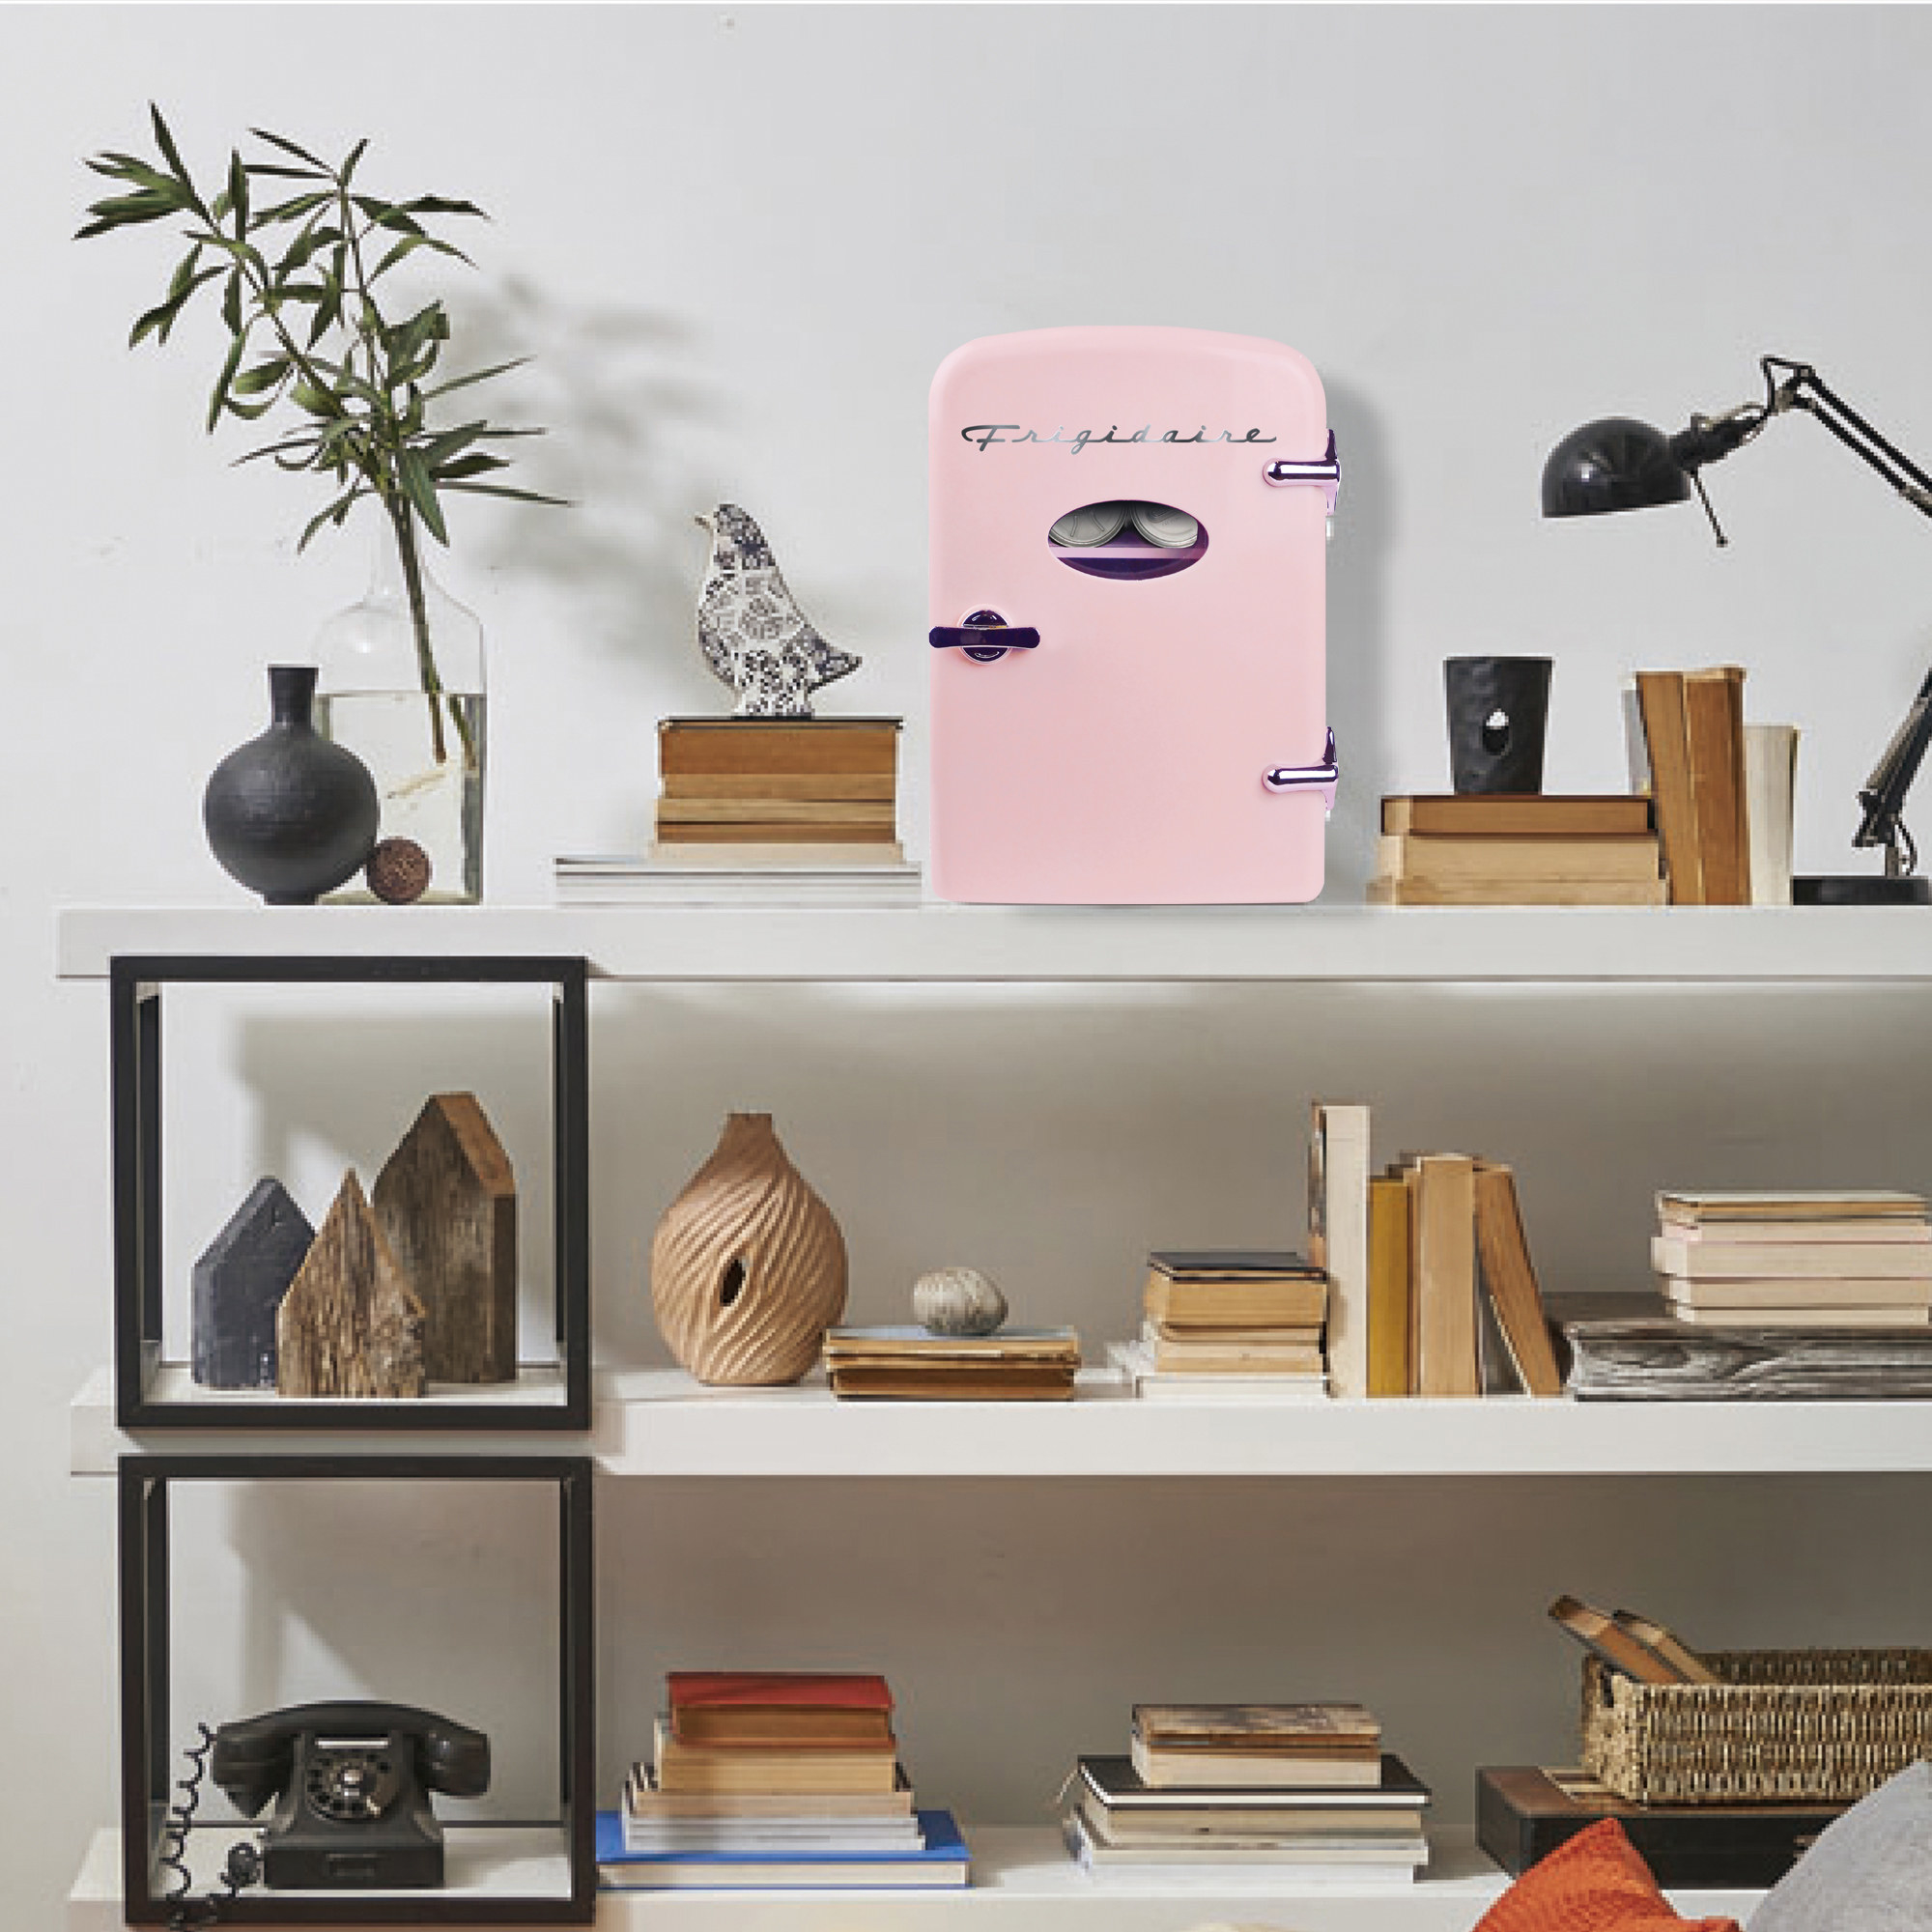 The mini fridge in the color pink on top of a bookshelf